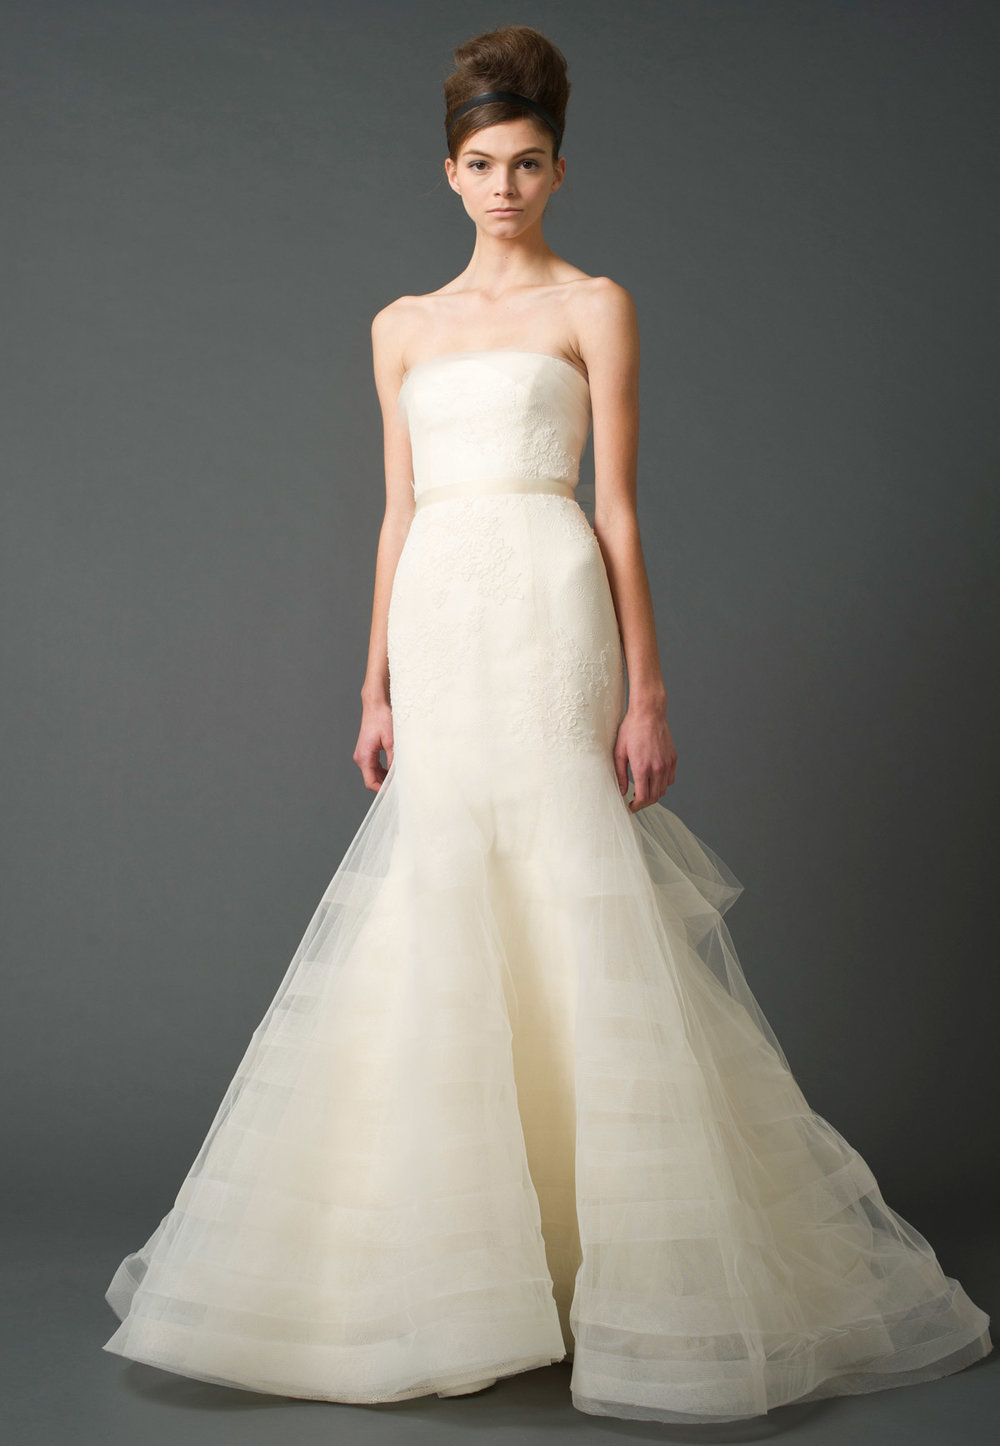 Iconic Style    Gown: Georgina    Description:A strapless modified mermaid gown with fusions of shadow lace and Chantilly lace with multi-tiered tulle skirt and cascading bias horsehair trim.